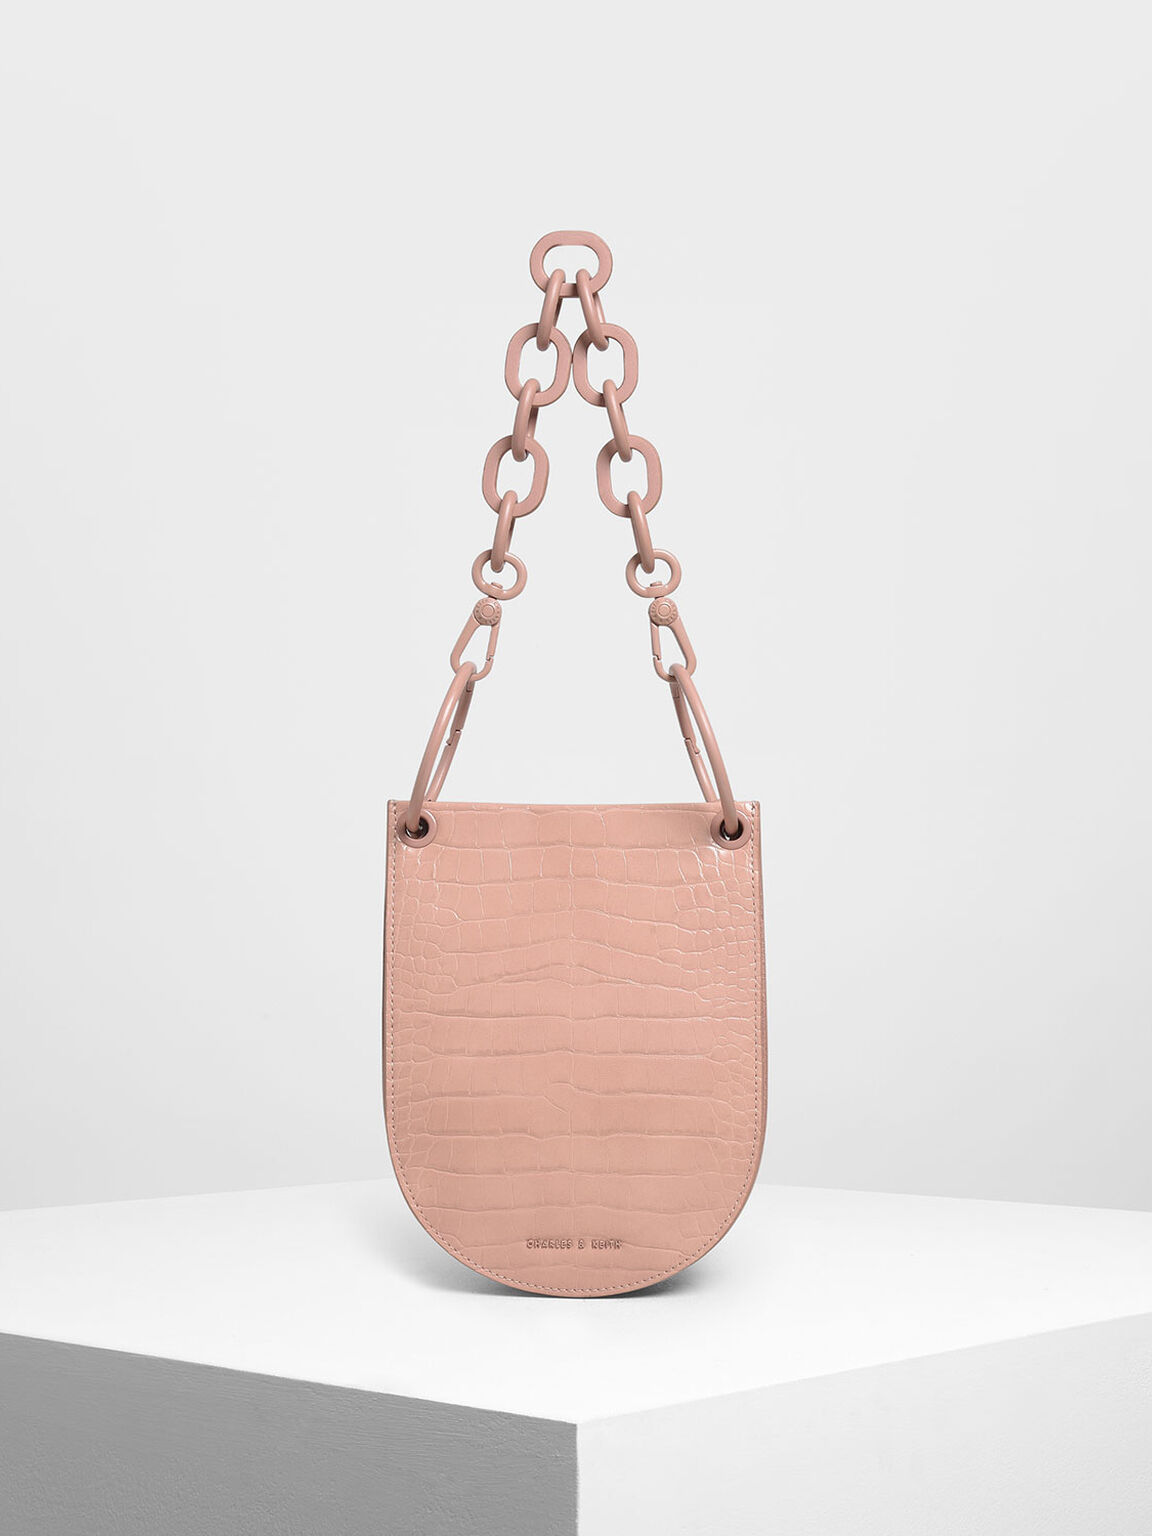 Croc-Effect Chunky Chain Handle U-Shaped Bag, Pink, hi-res